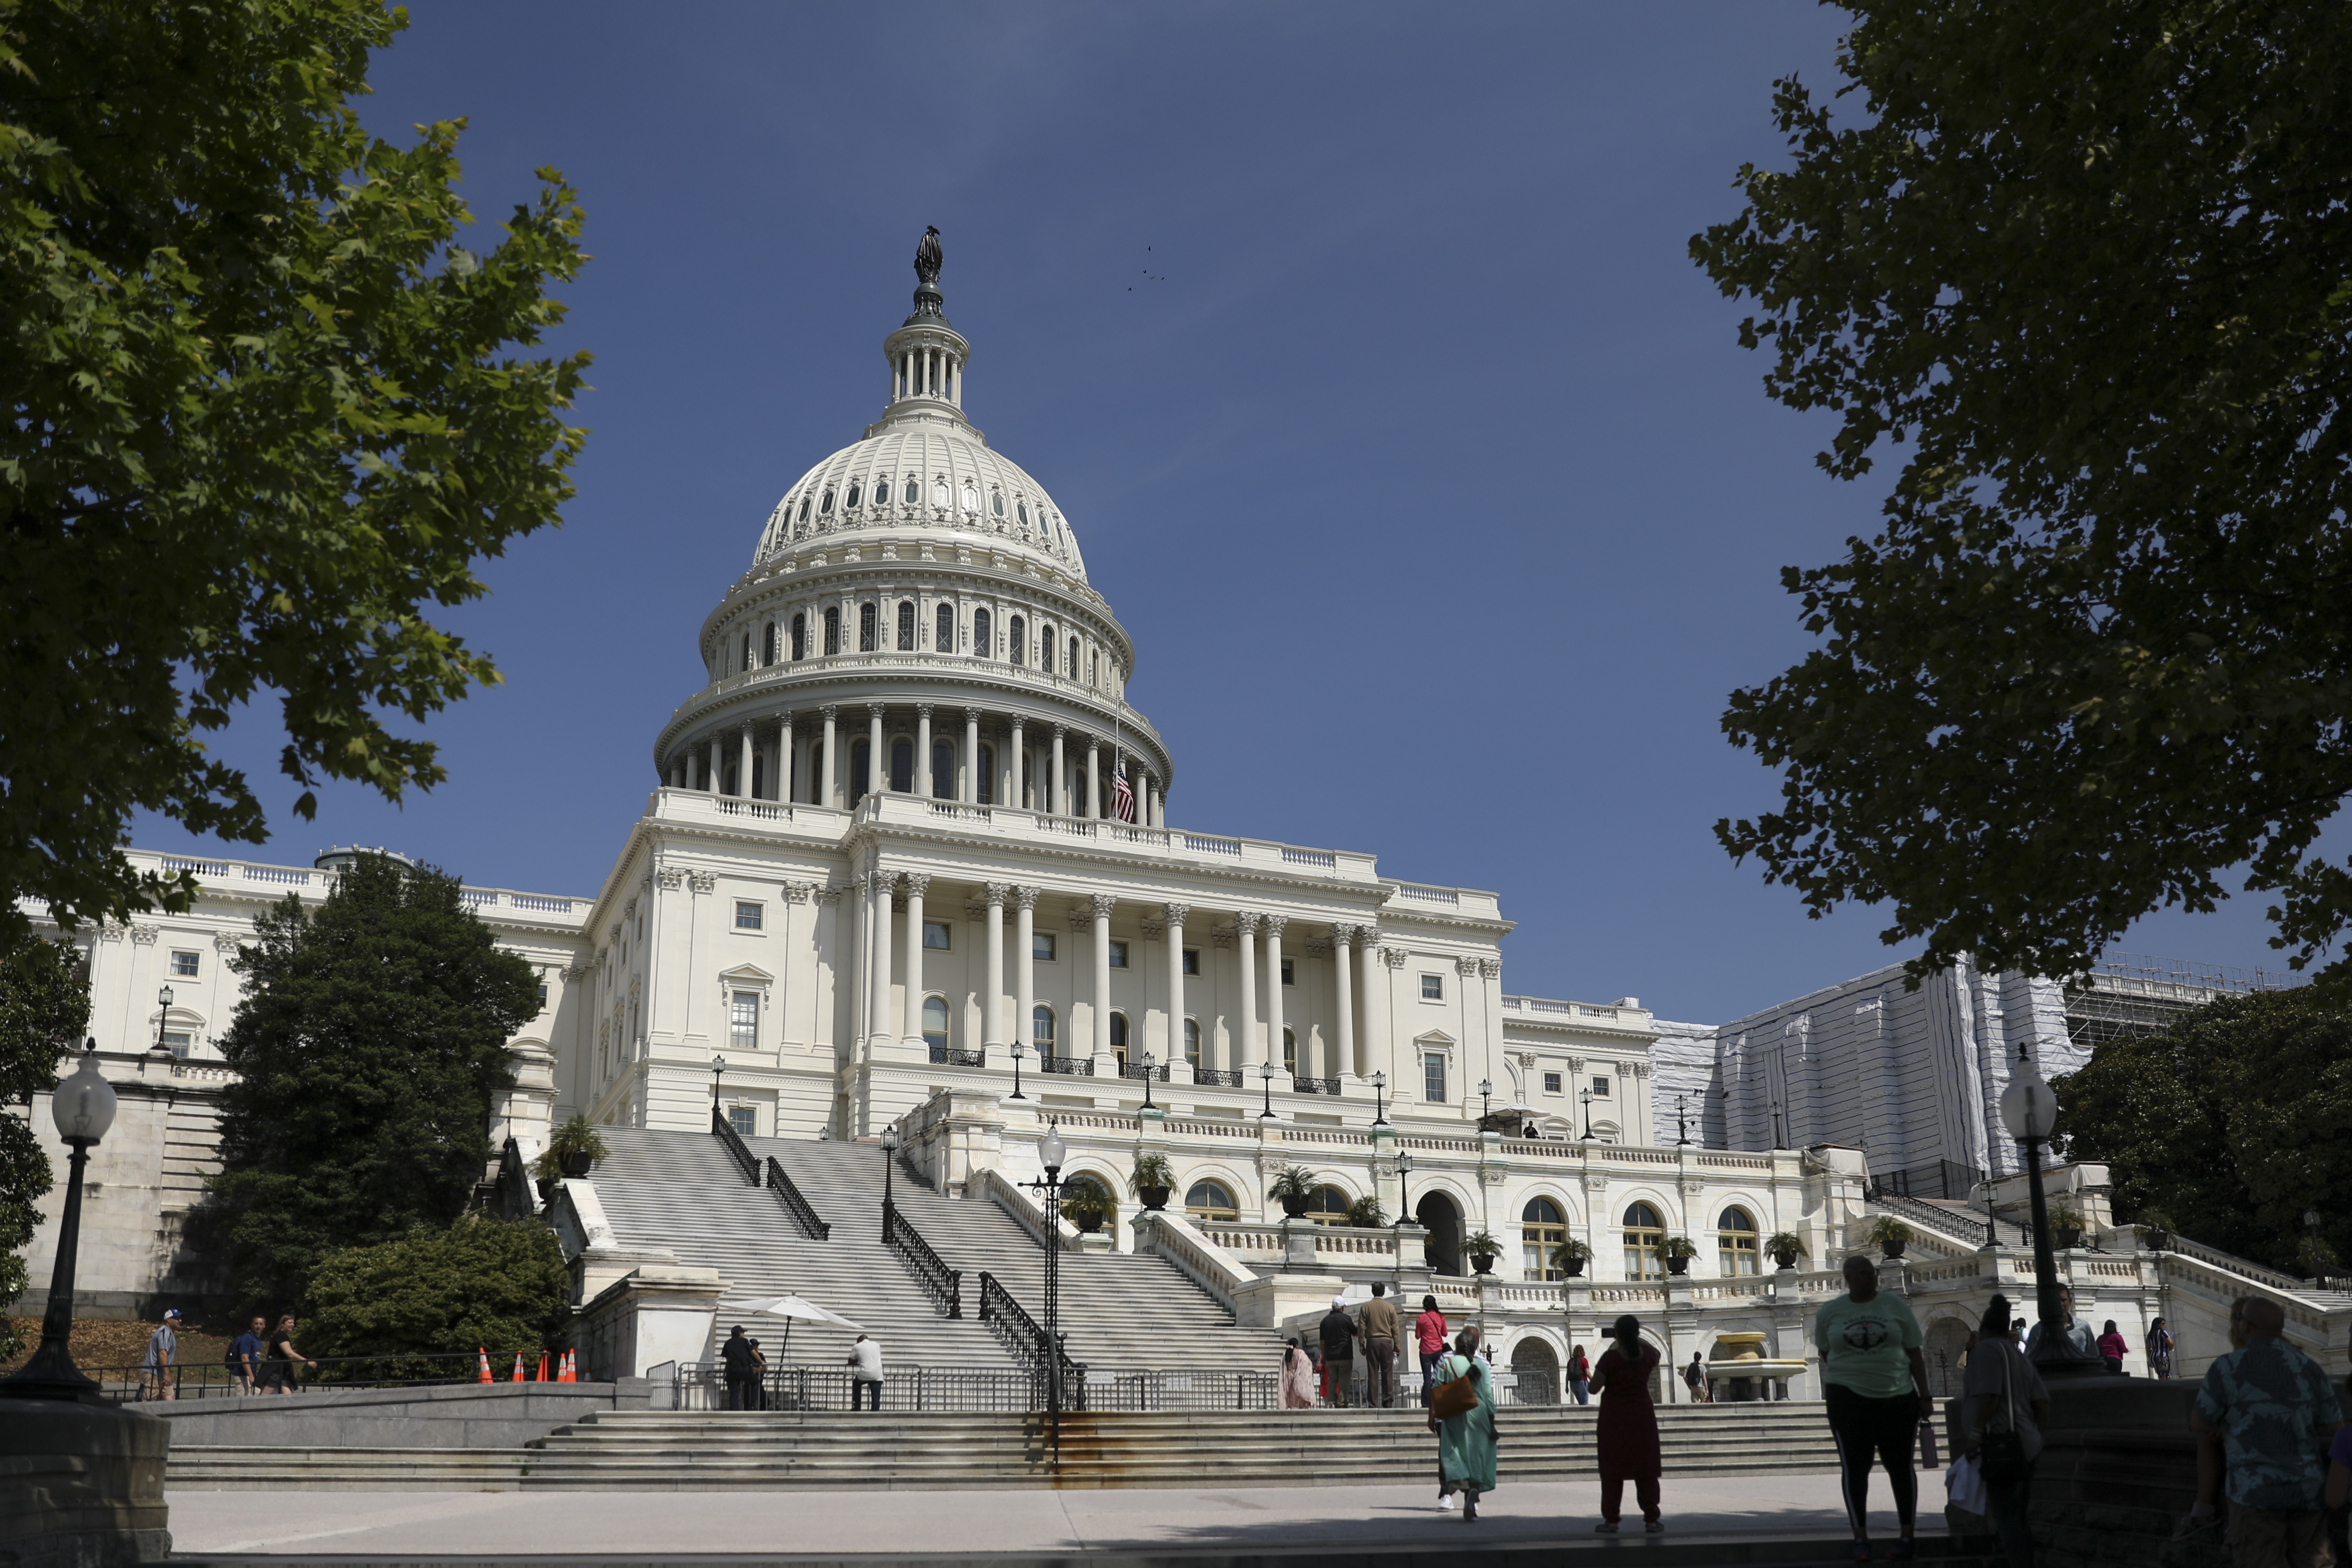 Culture of Corruption in Congress Encouraged by Legal 'Play-to-Pay' Privileges